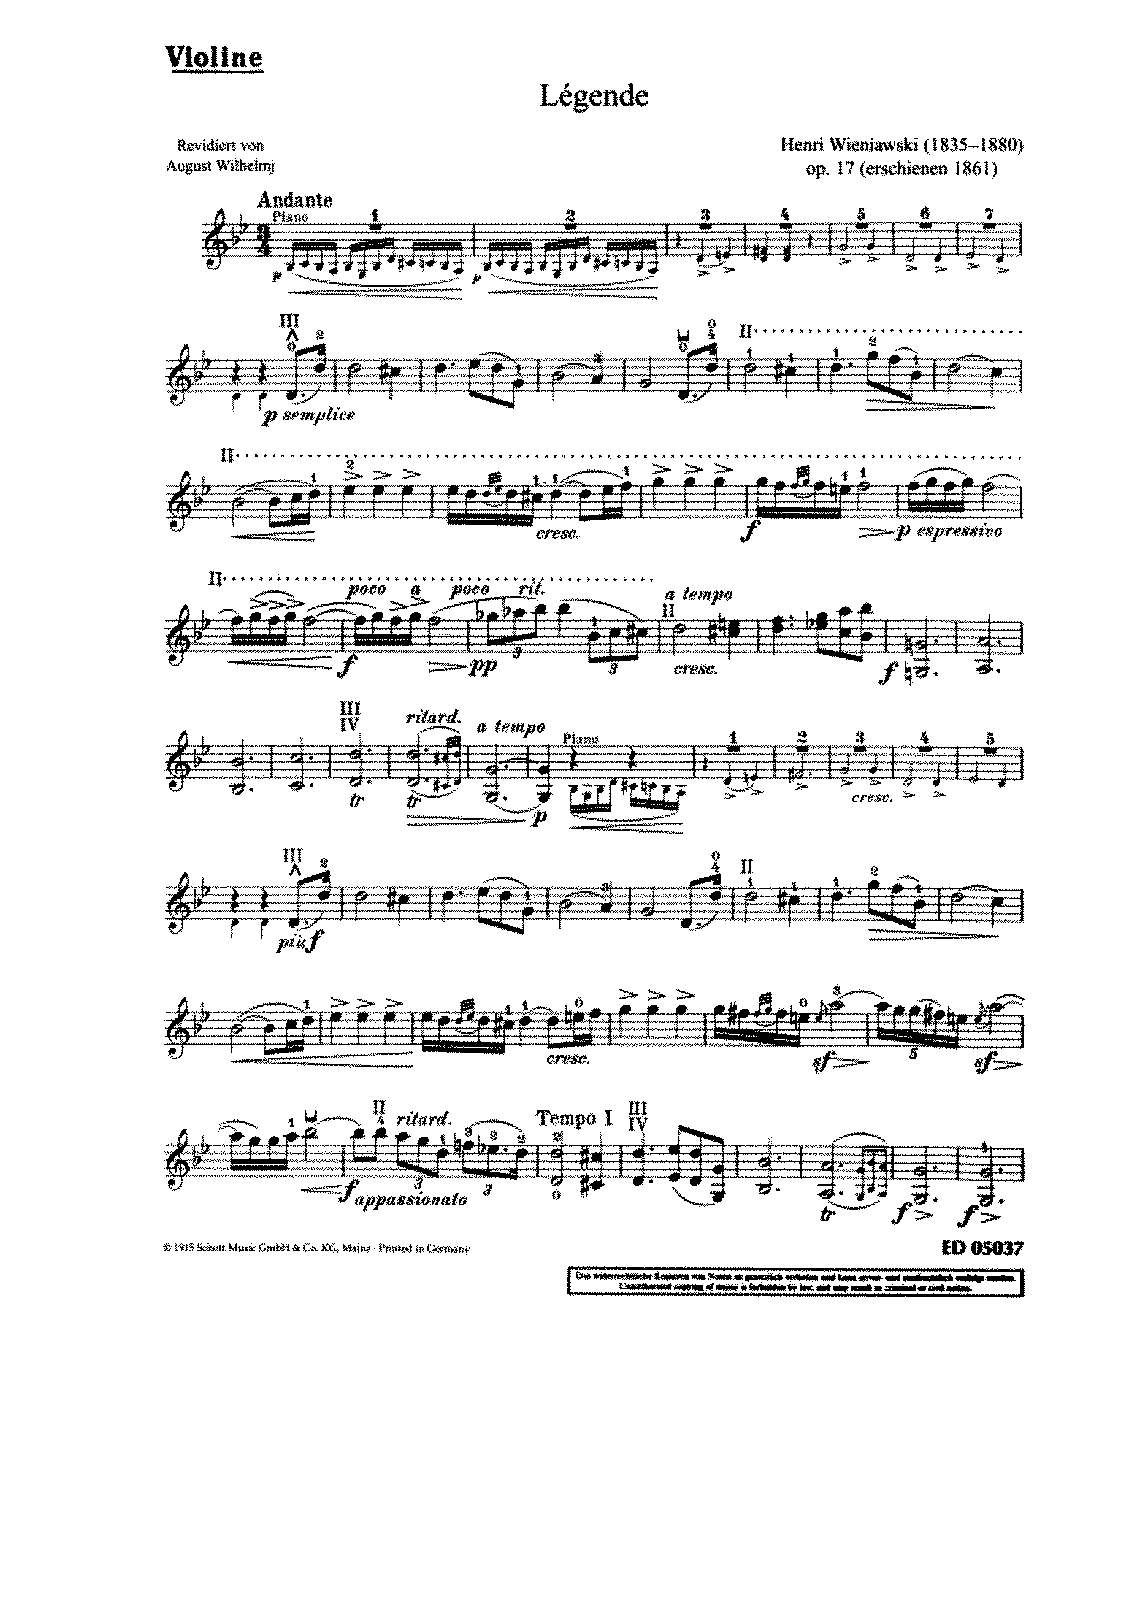 PMLP17449-Violin-legende-1 (1).pdf